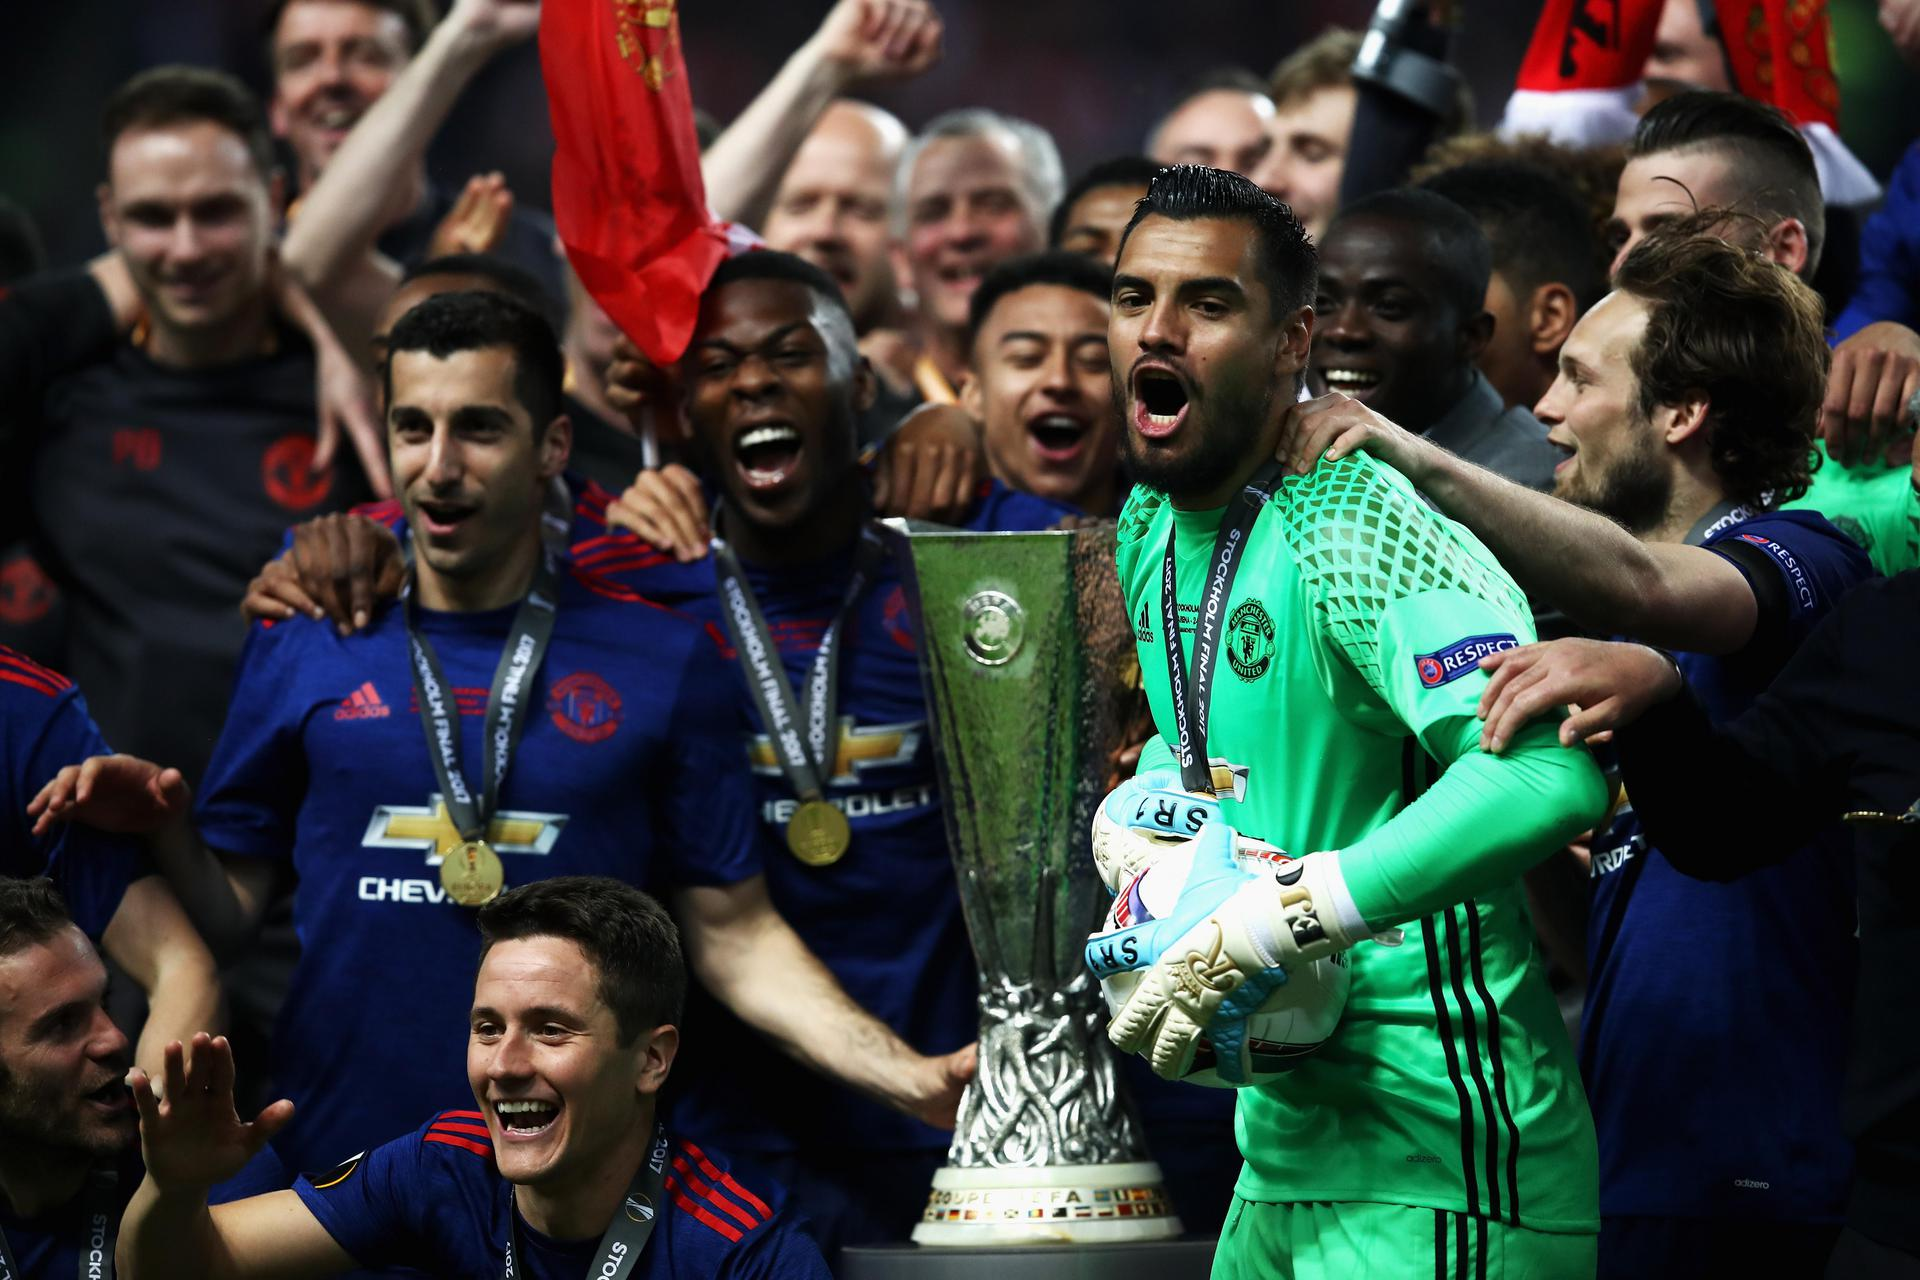 United players with the 2017 Europa League trophy.